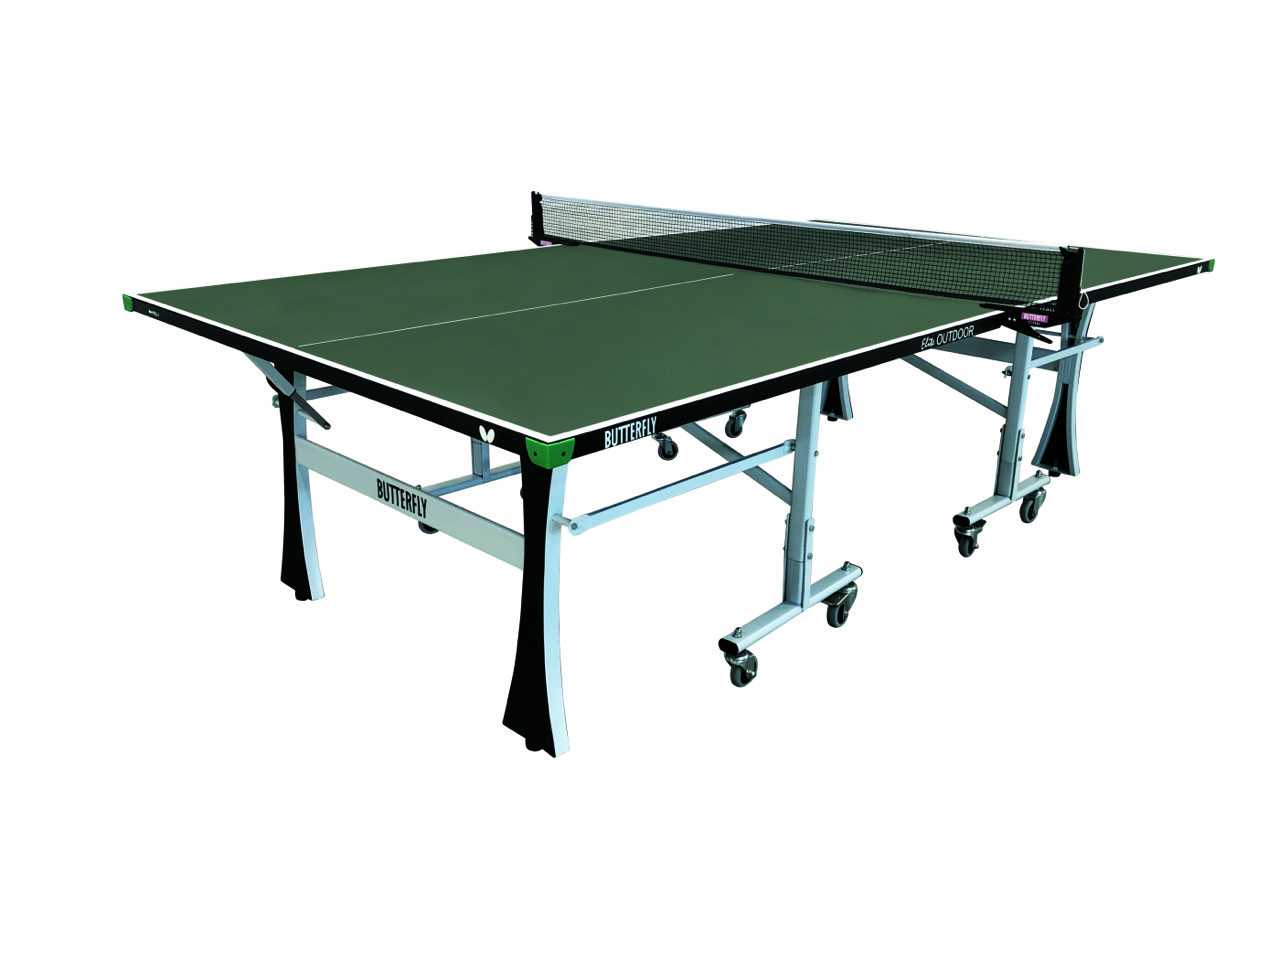 Butterfly Elite Outdoor Table Tennis Table